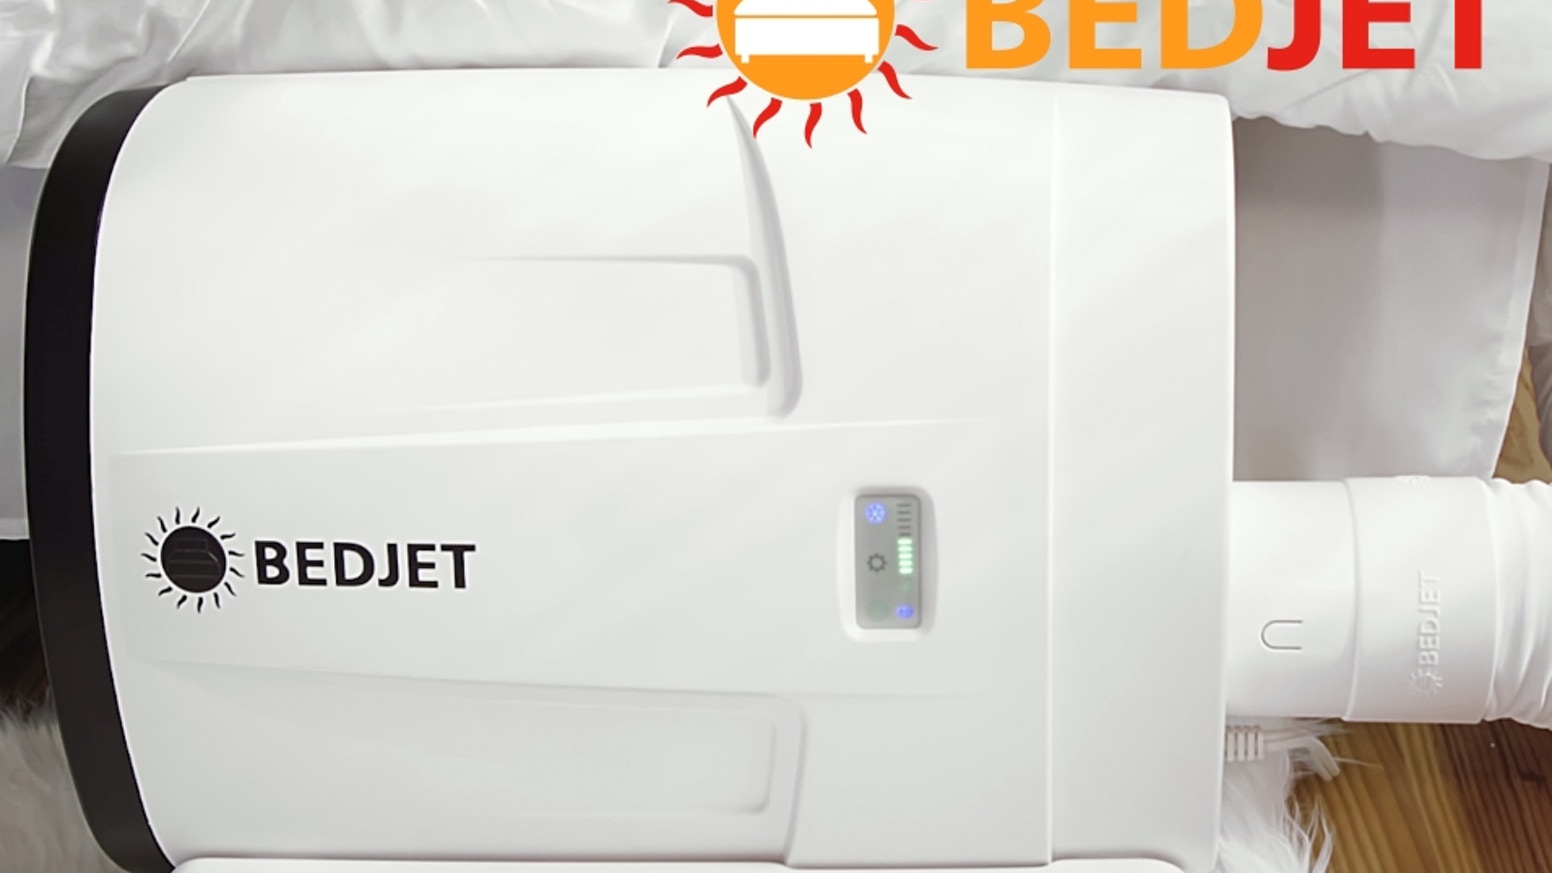 Bedjet V2 Sleep Inducing Climate Control Just For Your Bed By Electric Blanket Wiring Diagram Besides Circuit Llc Kickstarter